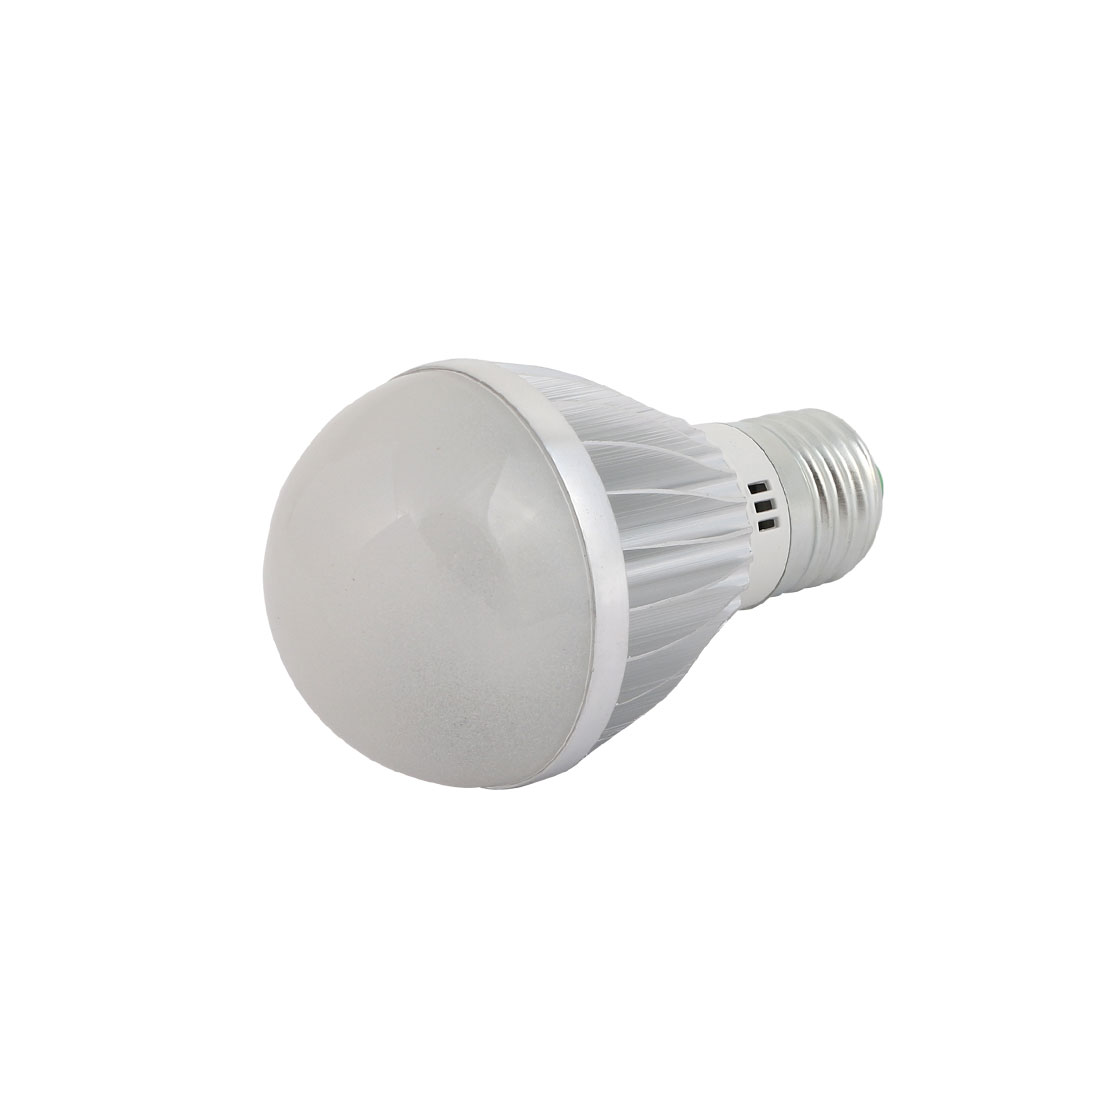 5W Slivery Aluminum Ball - Bulb Lamp Housing E27 Screw Base with Frosted Cover